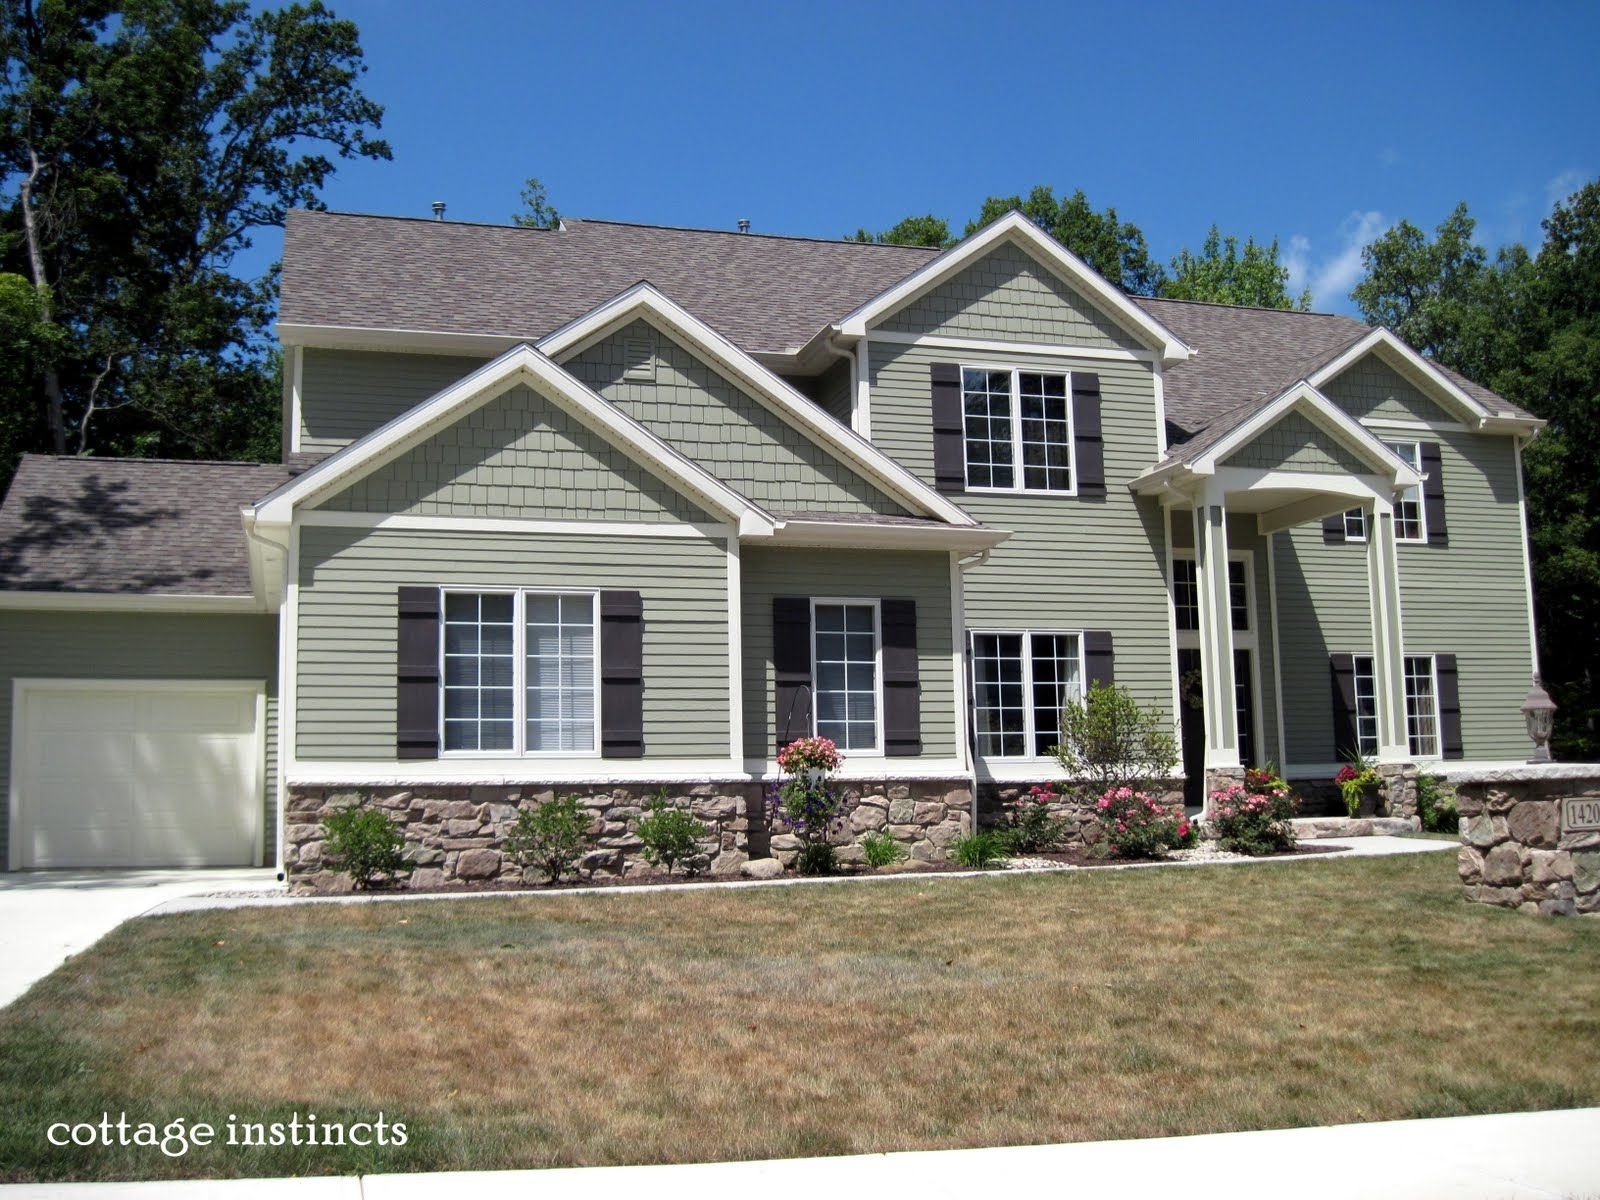 5 of the most popular home siding colors red brick house for Popular vinyl siding colors